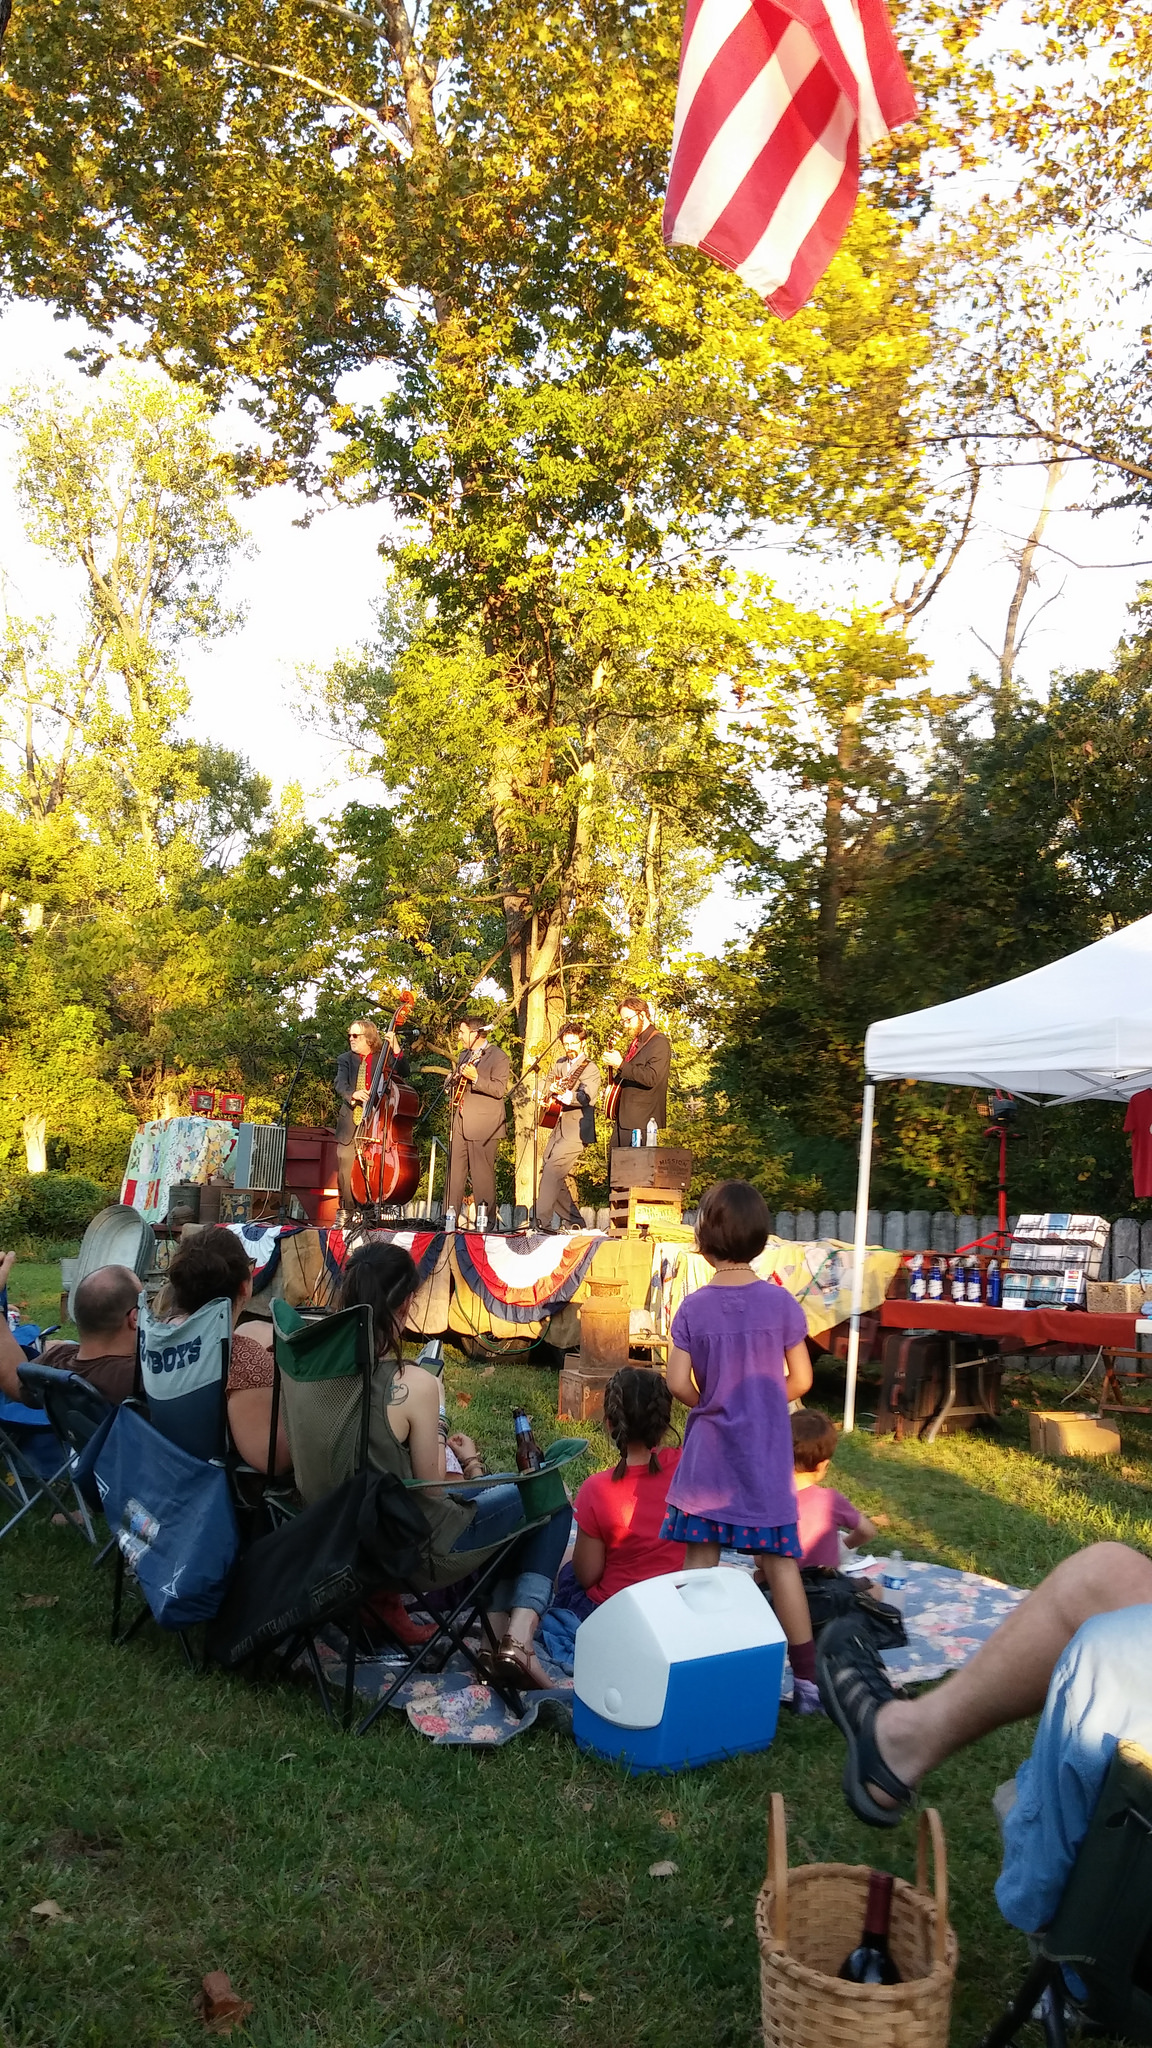 Blue Canyon Boys performing in Labadie, Missouri